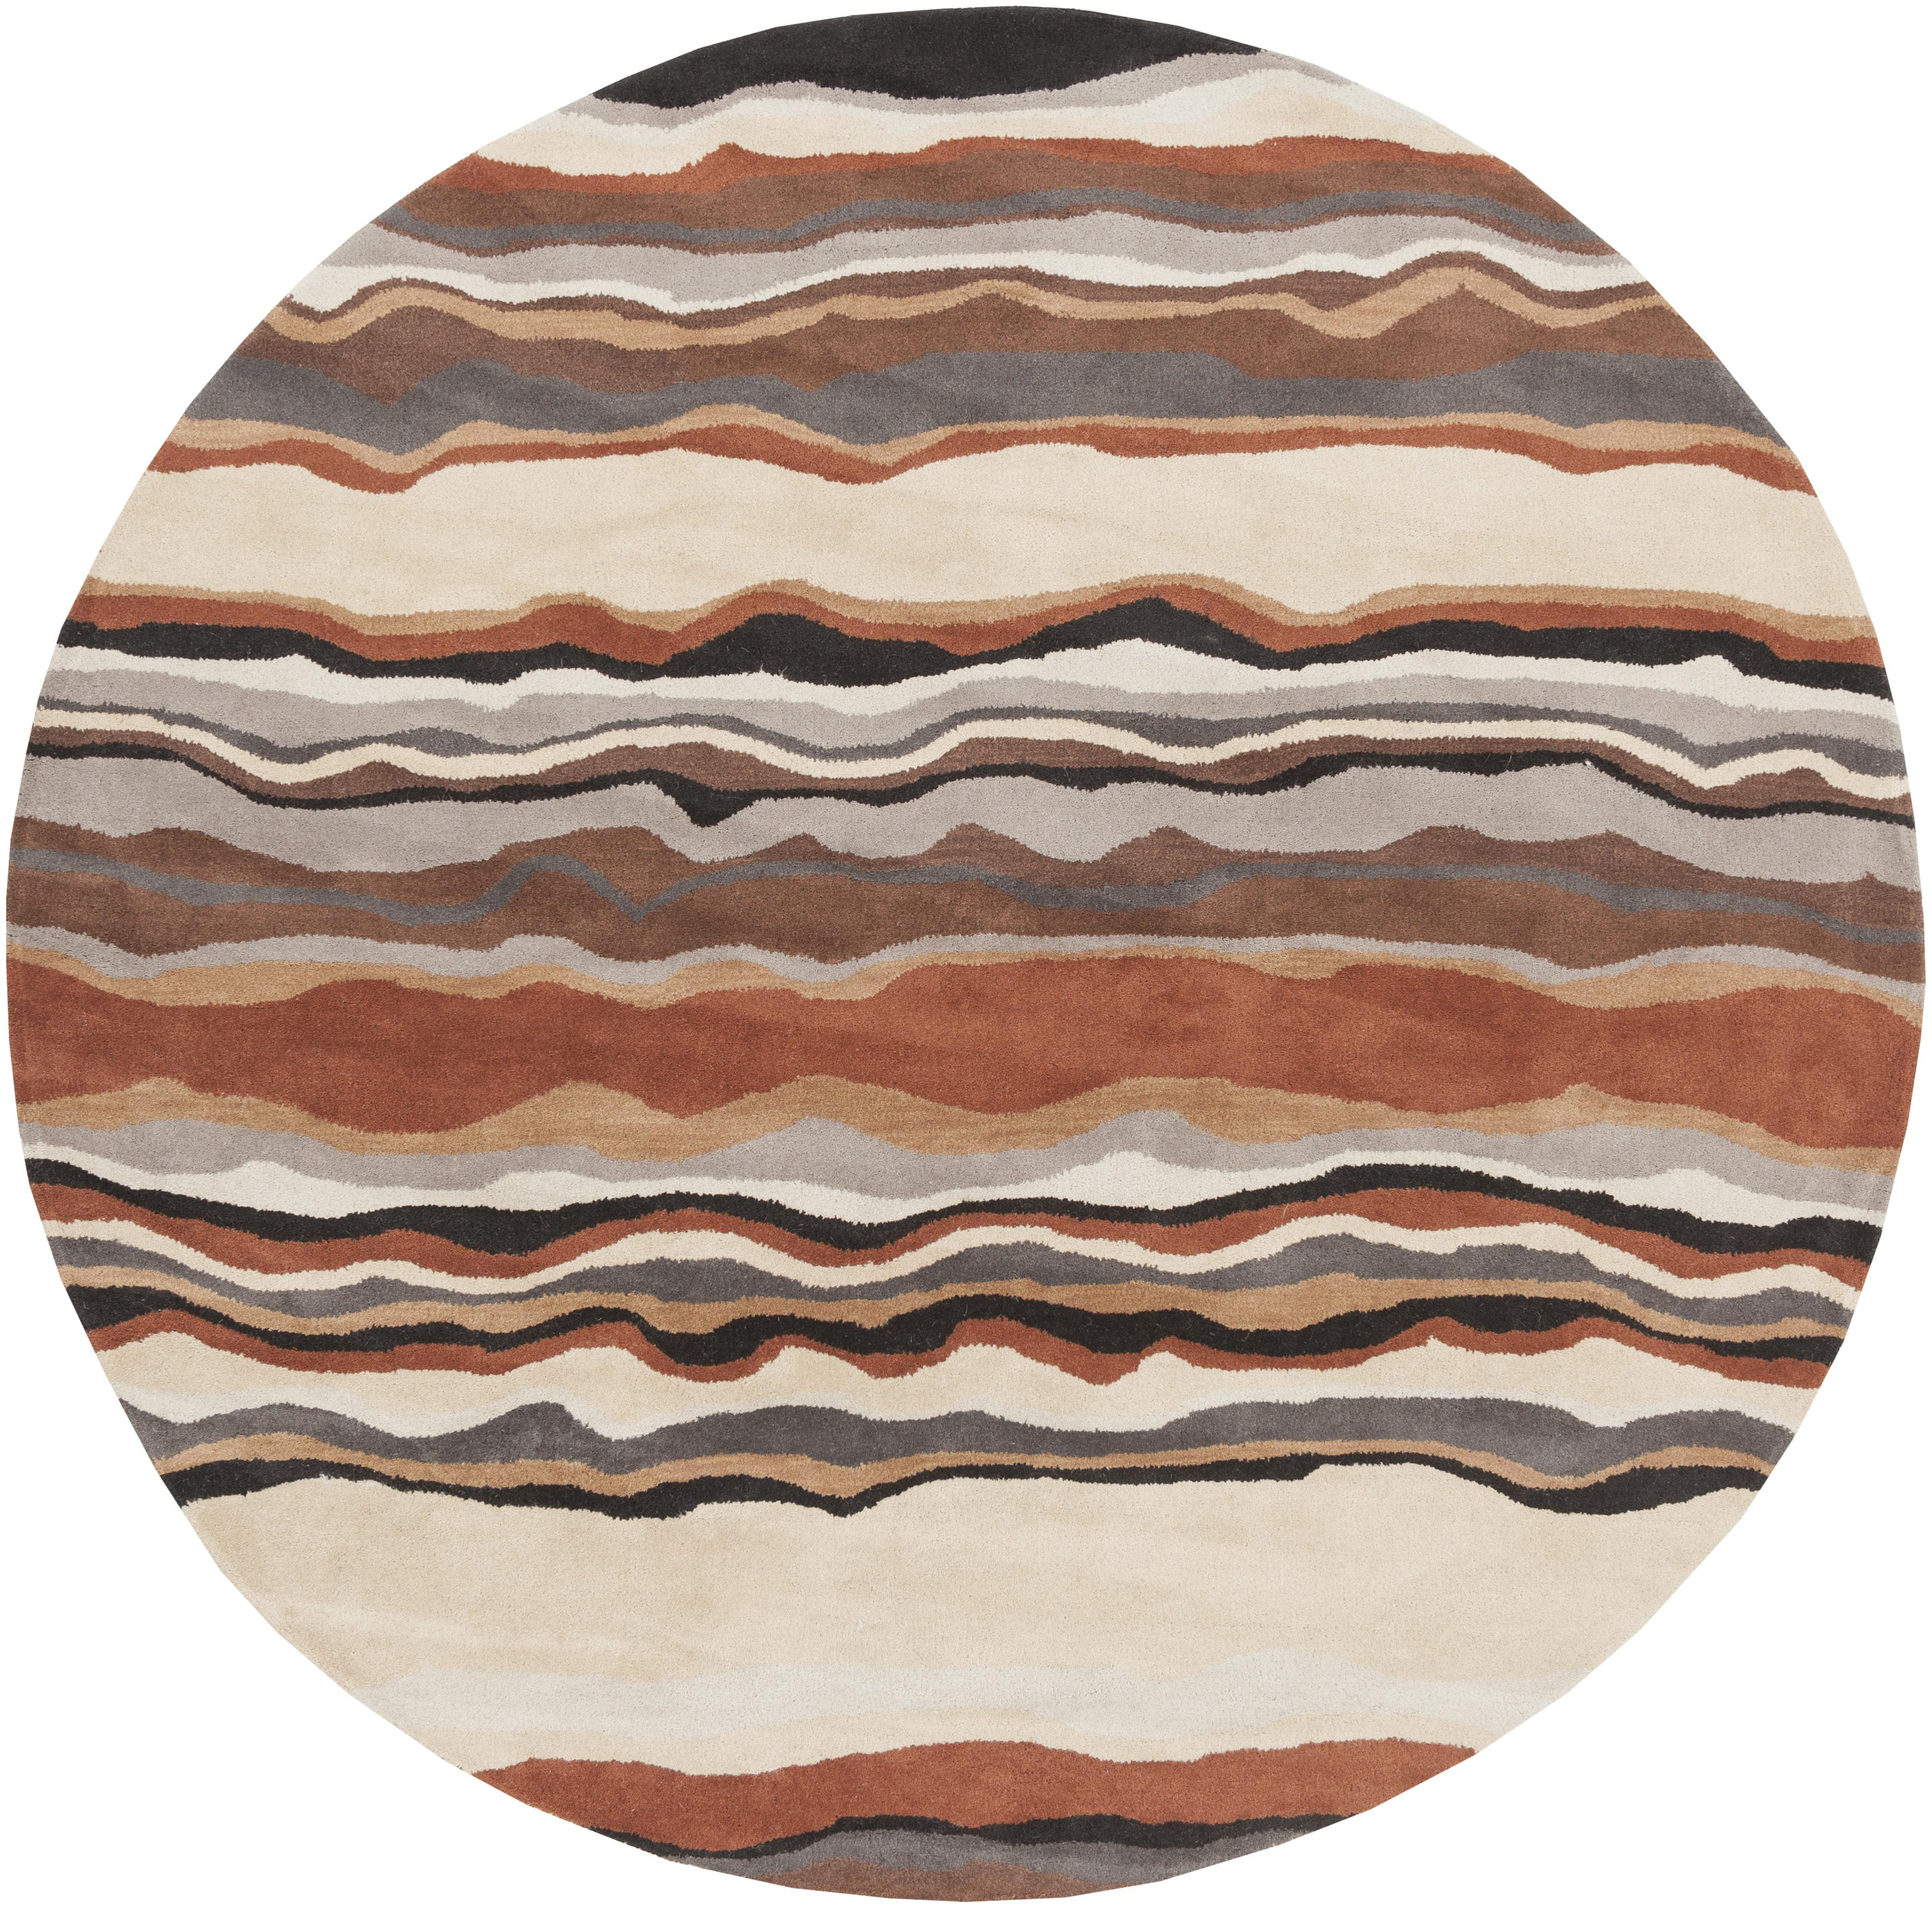 Surya Rugs Forum 8' Round - Item Number: FM7192-8RD